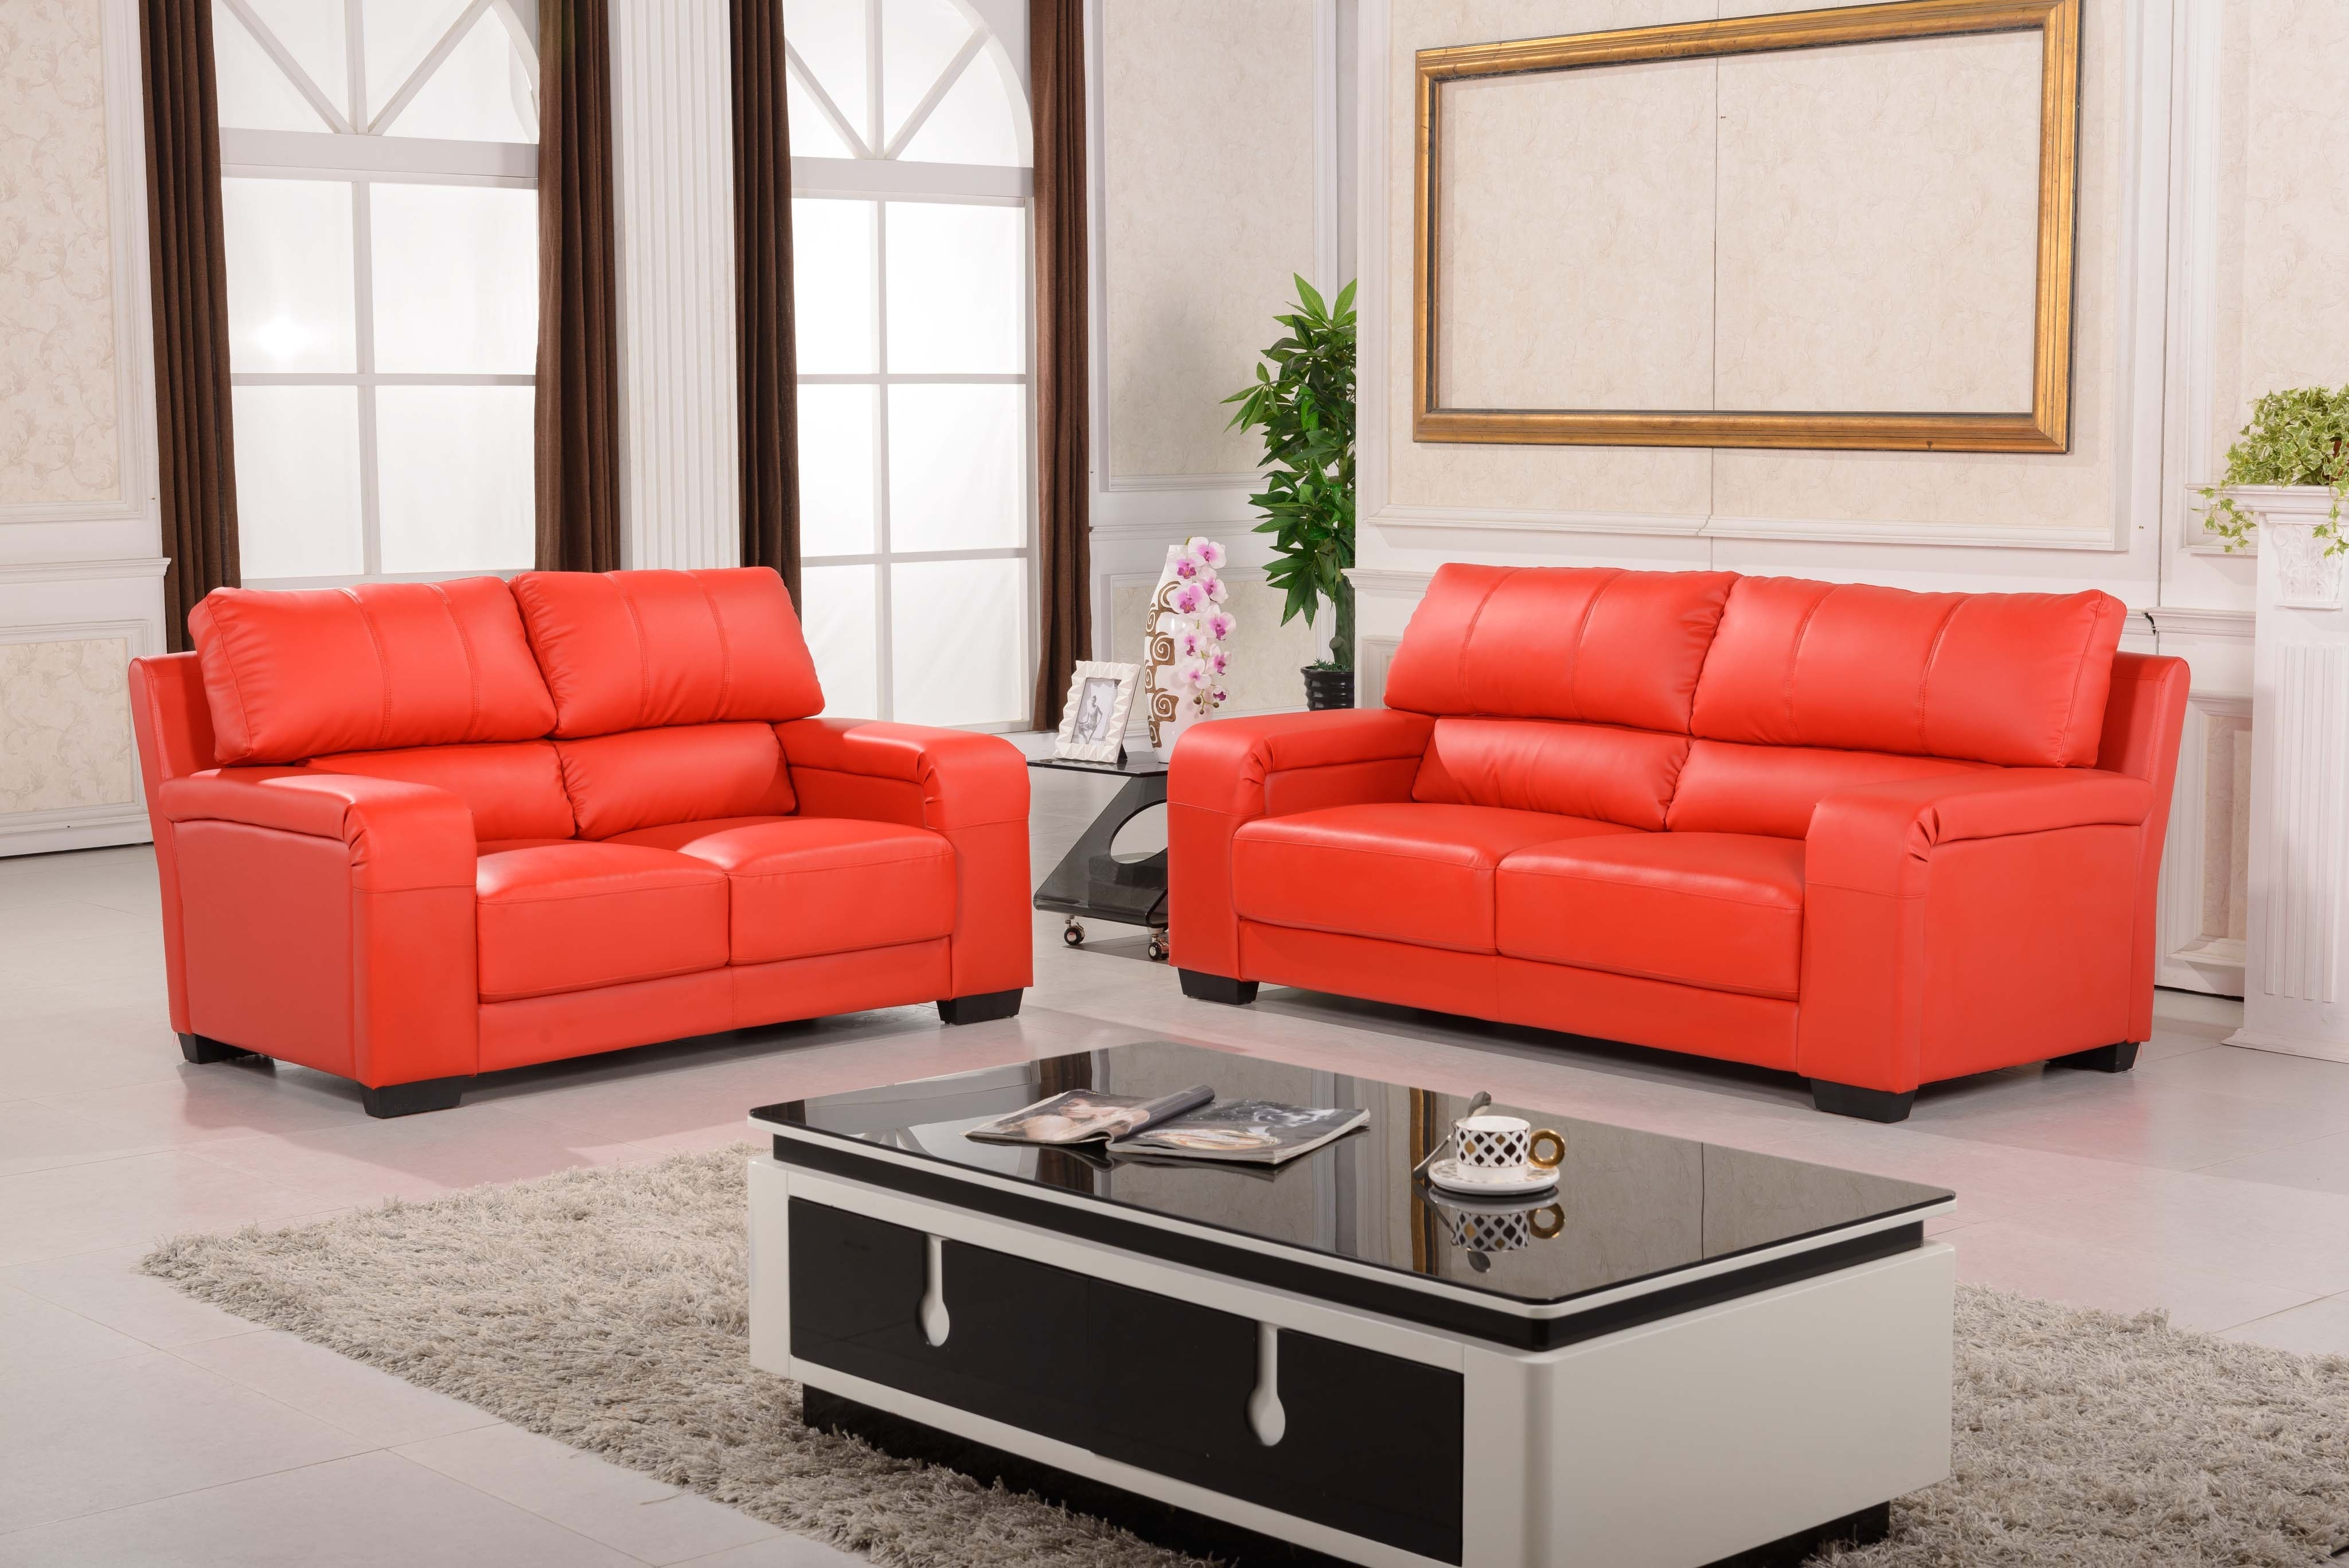 Leather Sofas Orange County Sofa Stores Ashley Furniture Sectional pertaining to Orange County Sofas (Image 5 of 10)